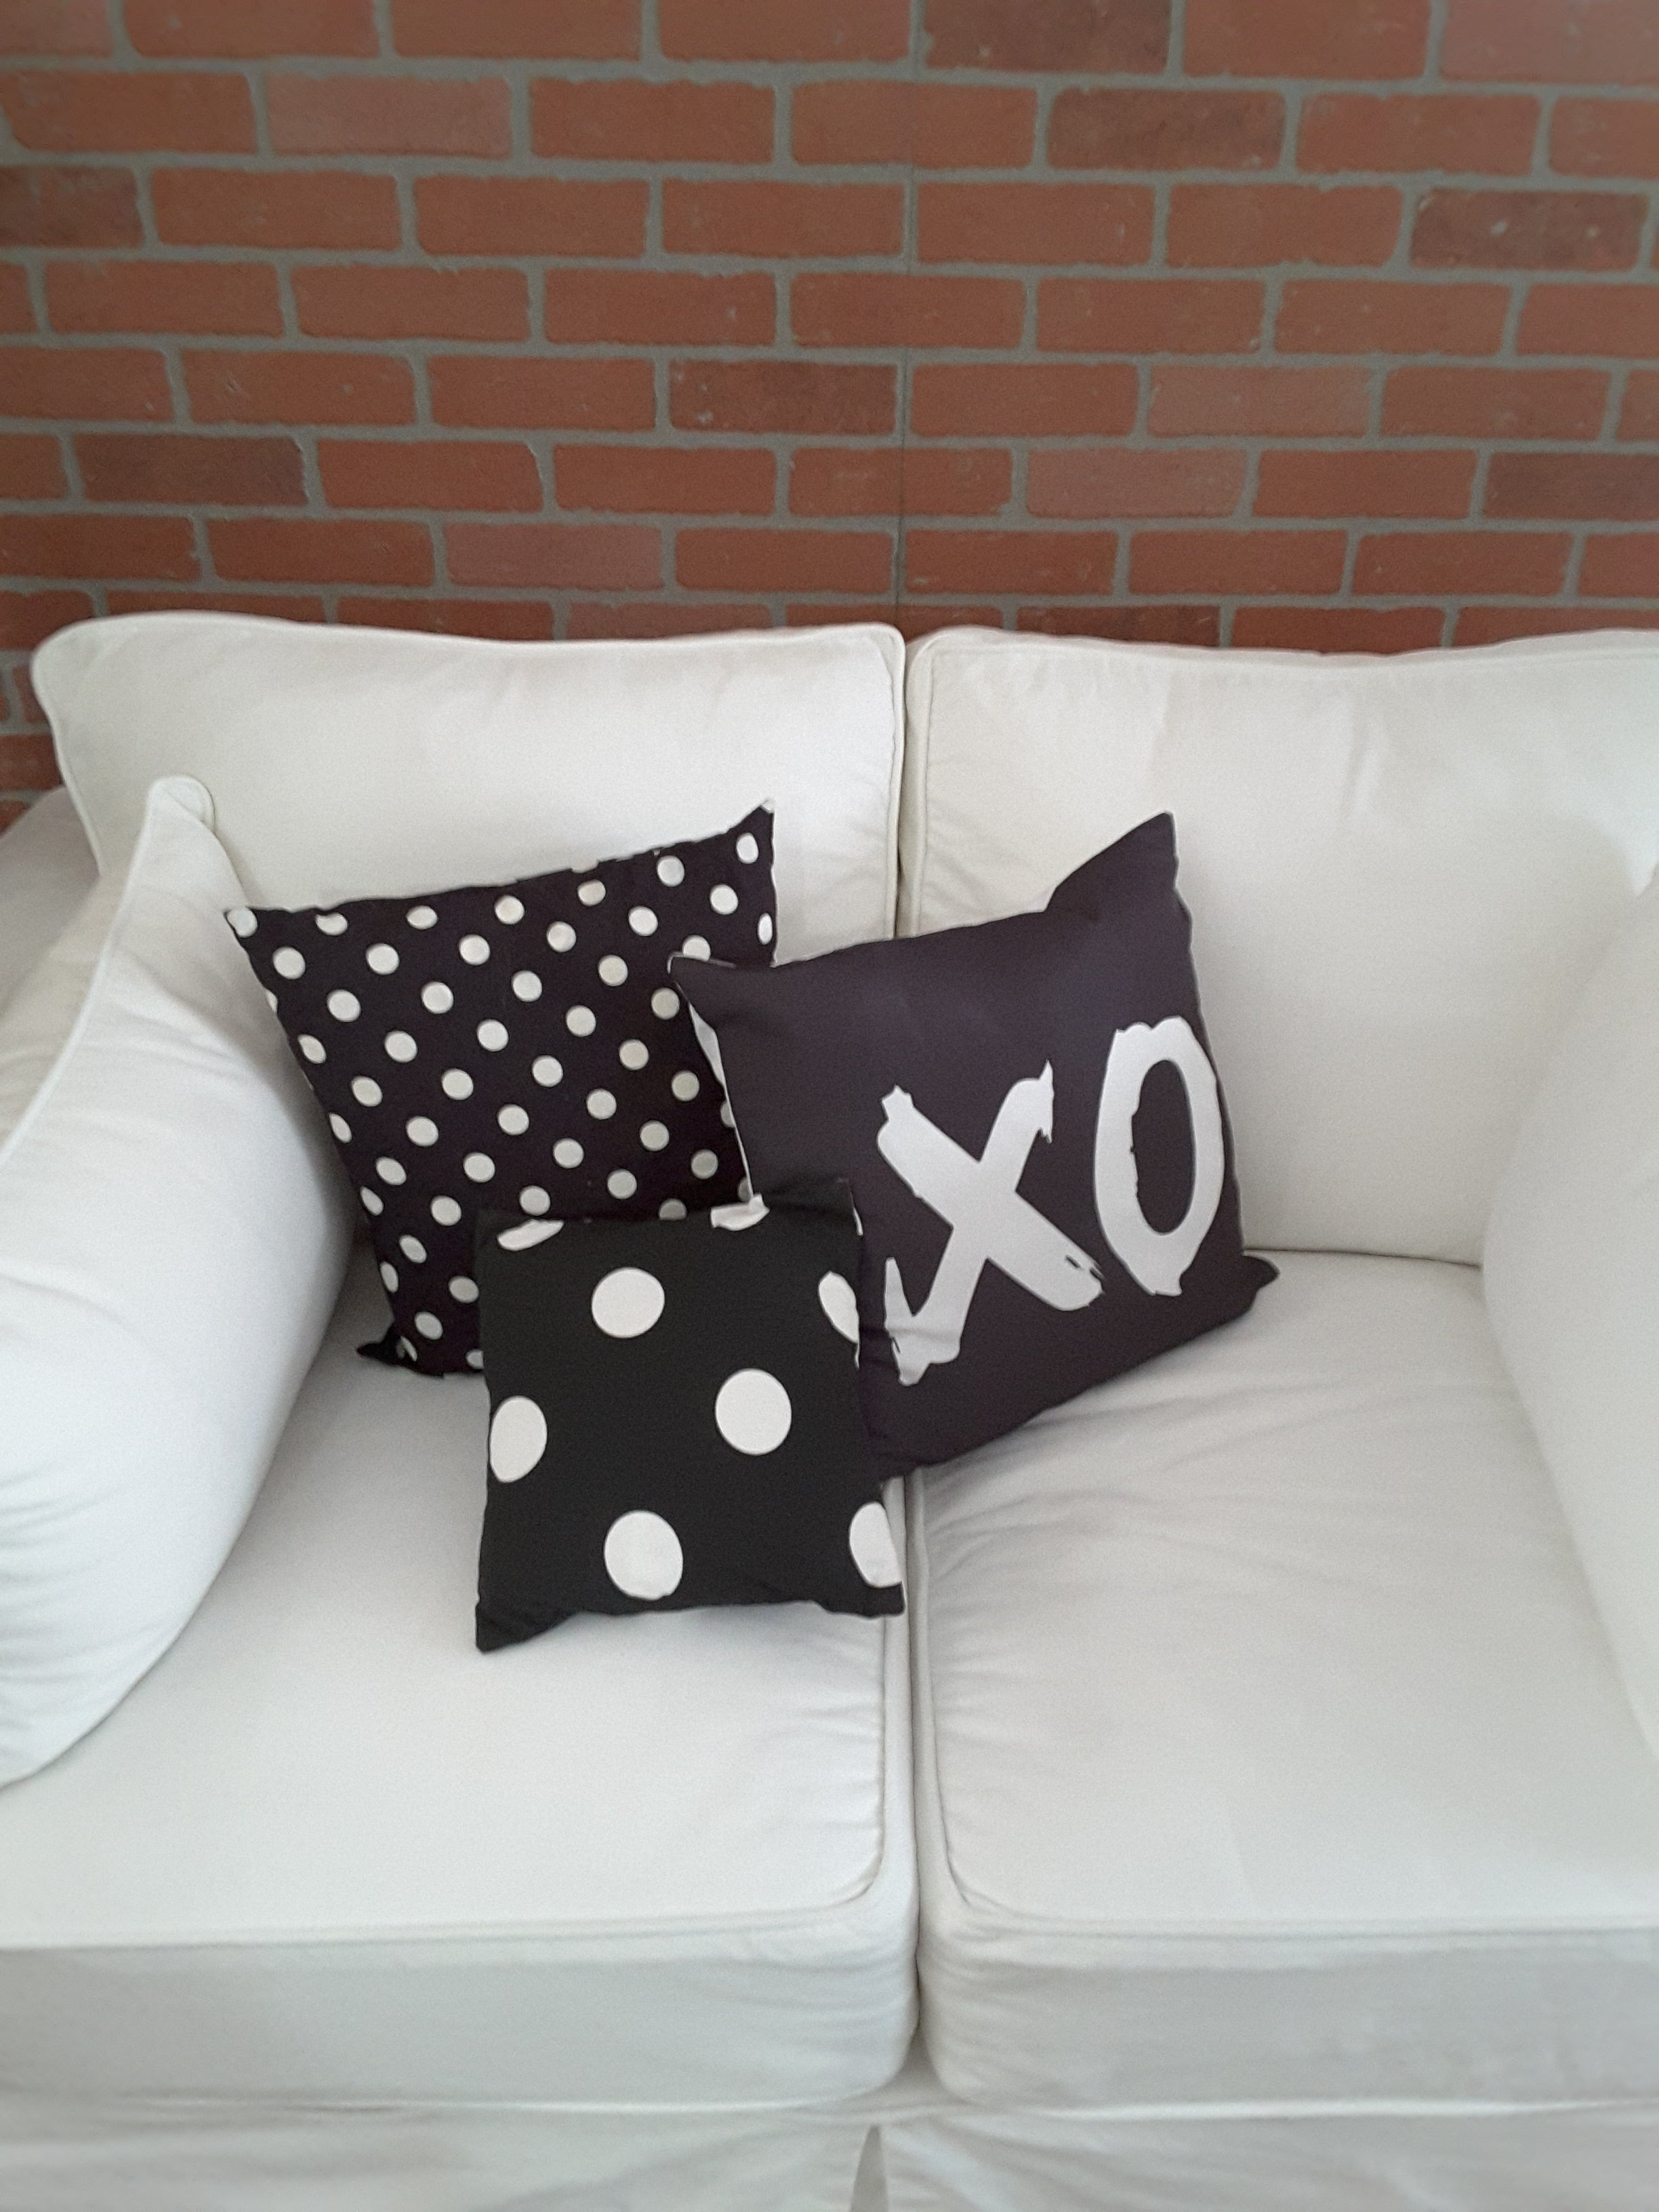 Pillow Cover with XO (Hug & Kiss) - Free Shipping! - TheLastWordBish.com